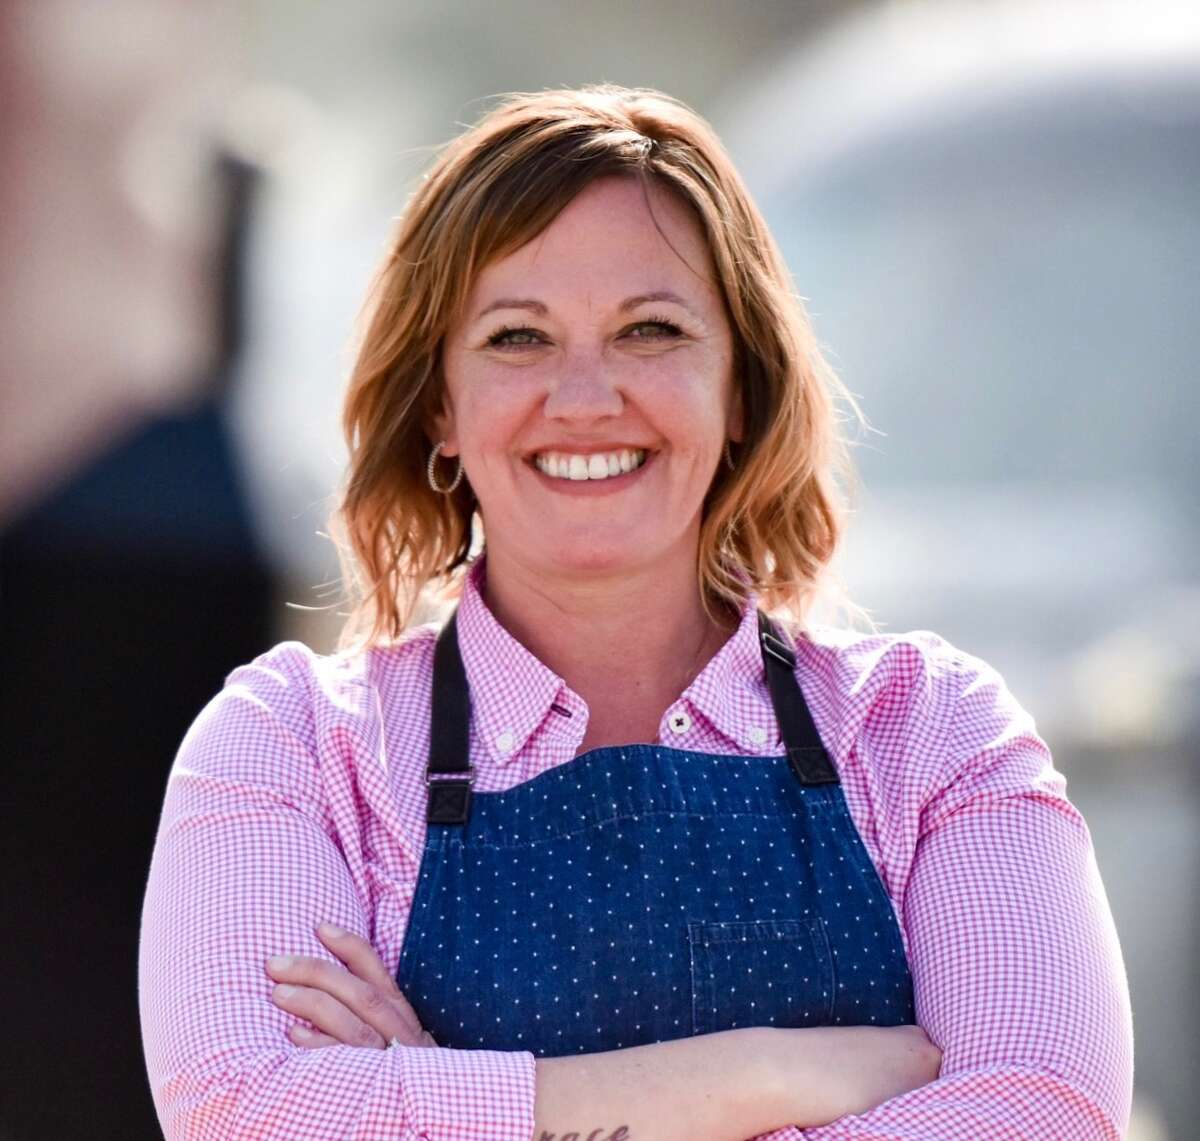 Chef Jessica Timmons has joined butcher/restaurateur Felix Florez as chef/partner in Cherry Block Craft Butcher & Seasonal Kitchen, opening in Bravery Chef Hall in downtown Houston.